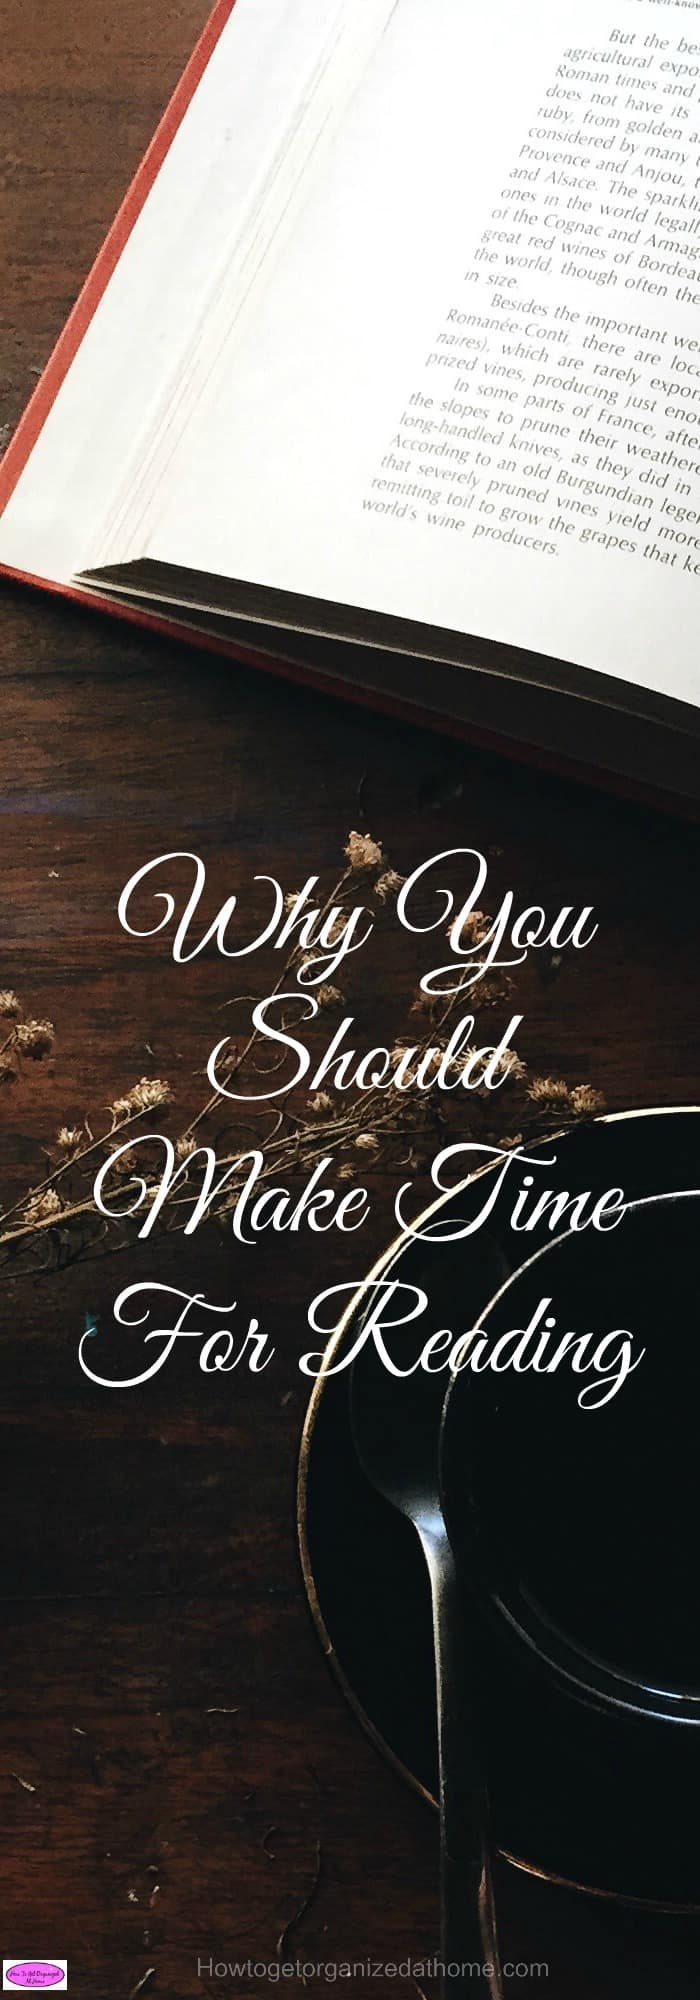 If you make time for reading and to improve your own reading skills it will have an effect on your life as reading is an important skill to learn!